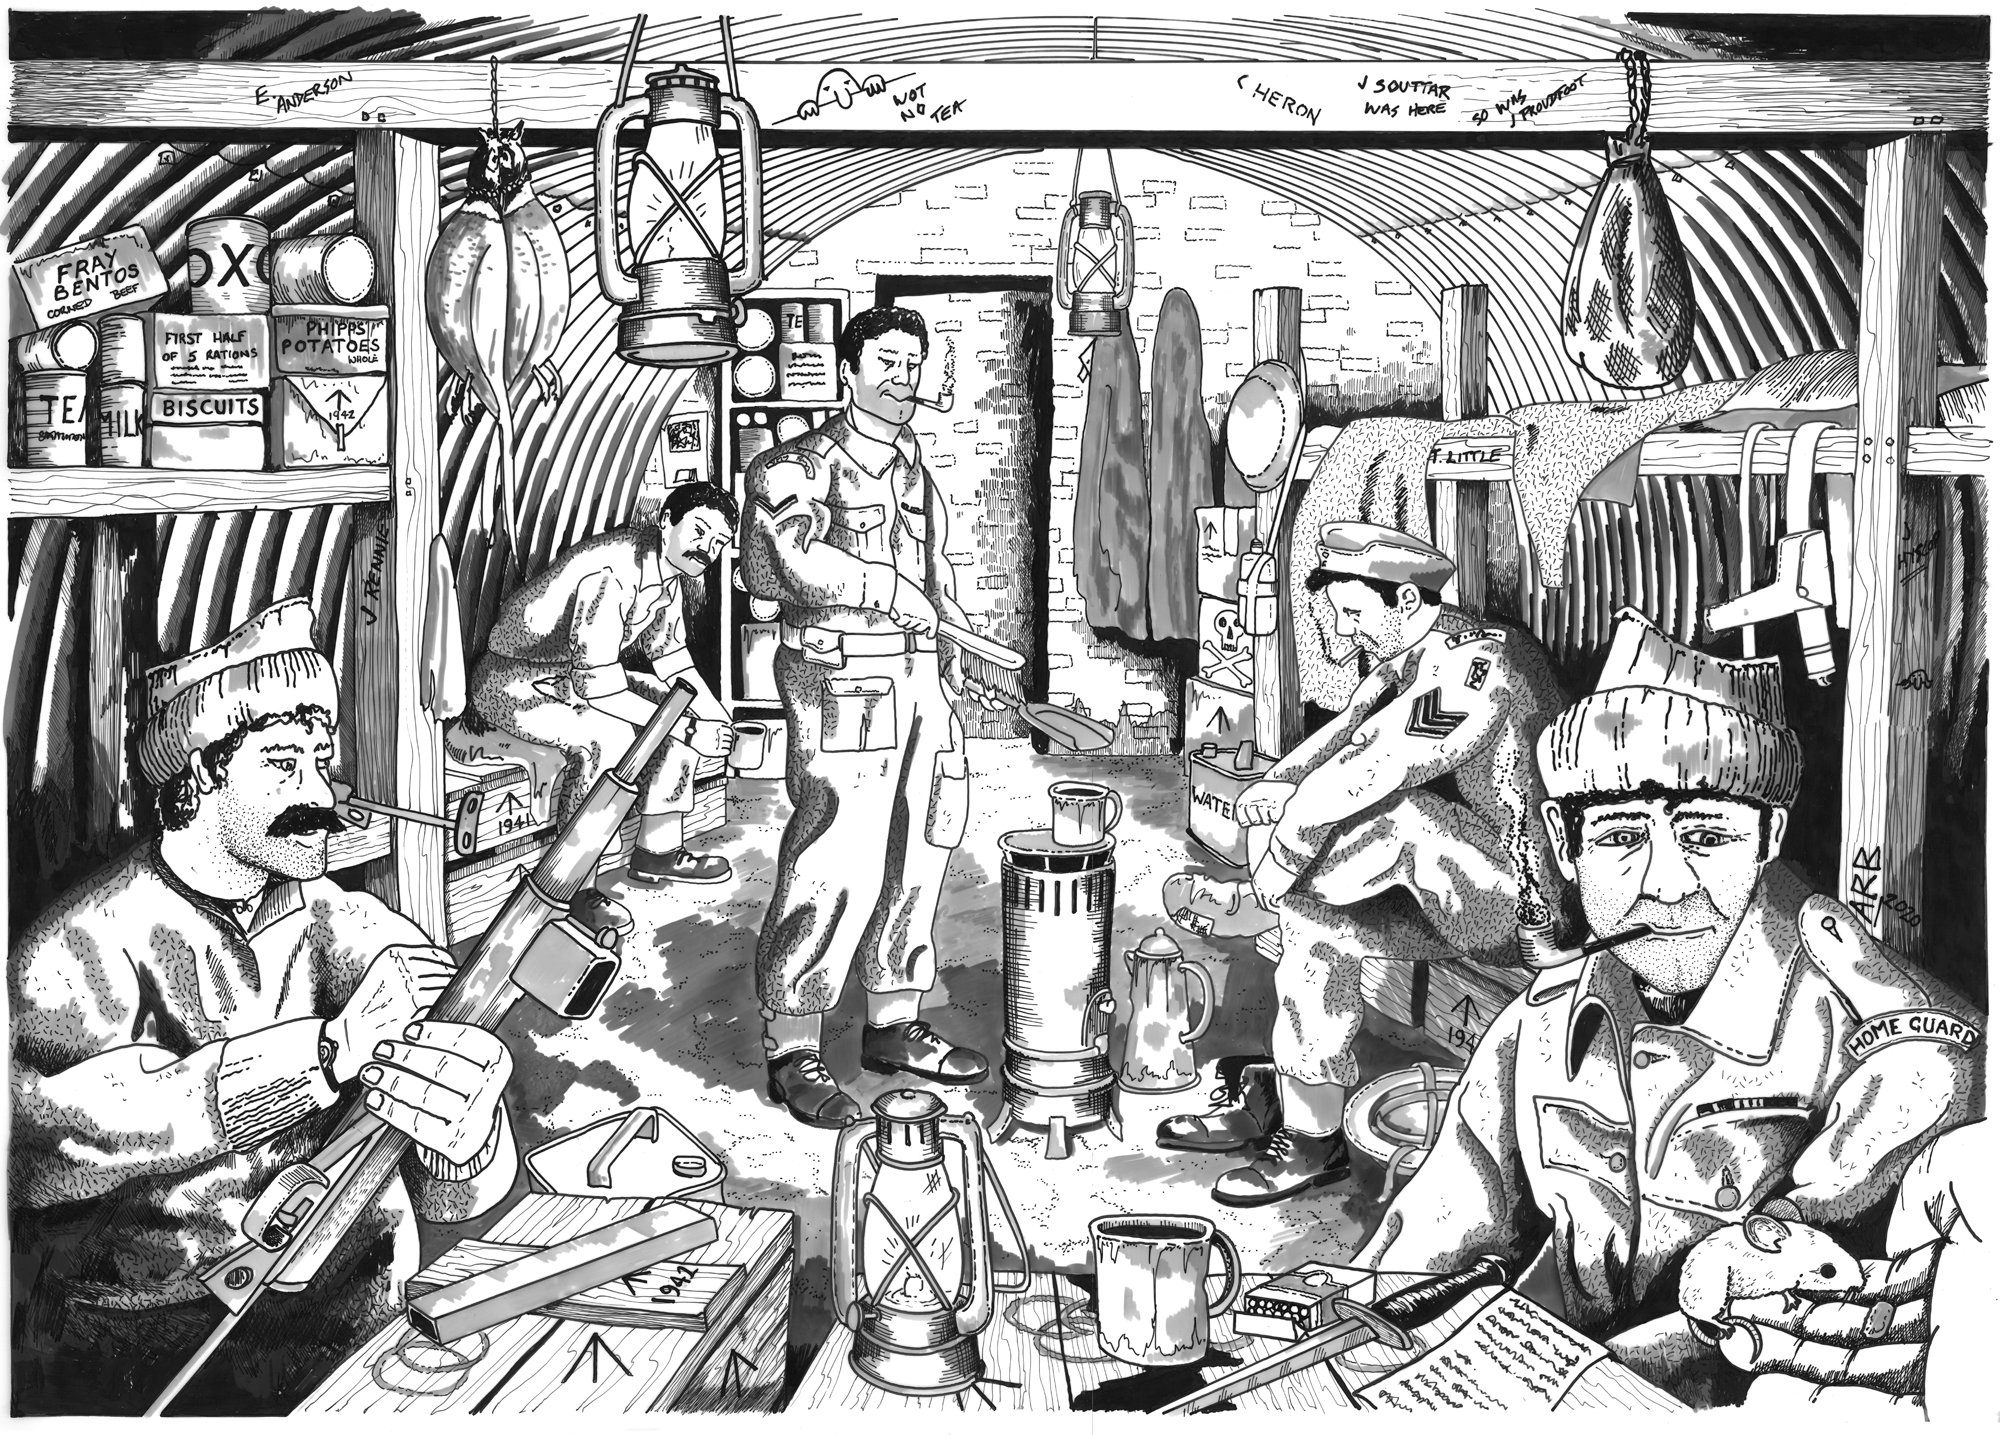 Illustration of the recently rediscovered World War Two bunker as it may have looked after a patrol, with men relaxing and eating rations